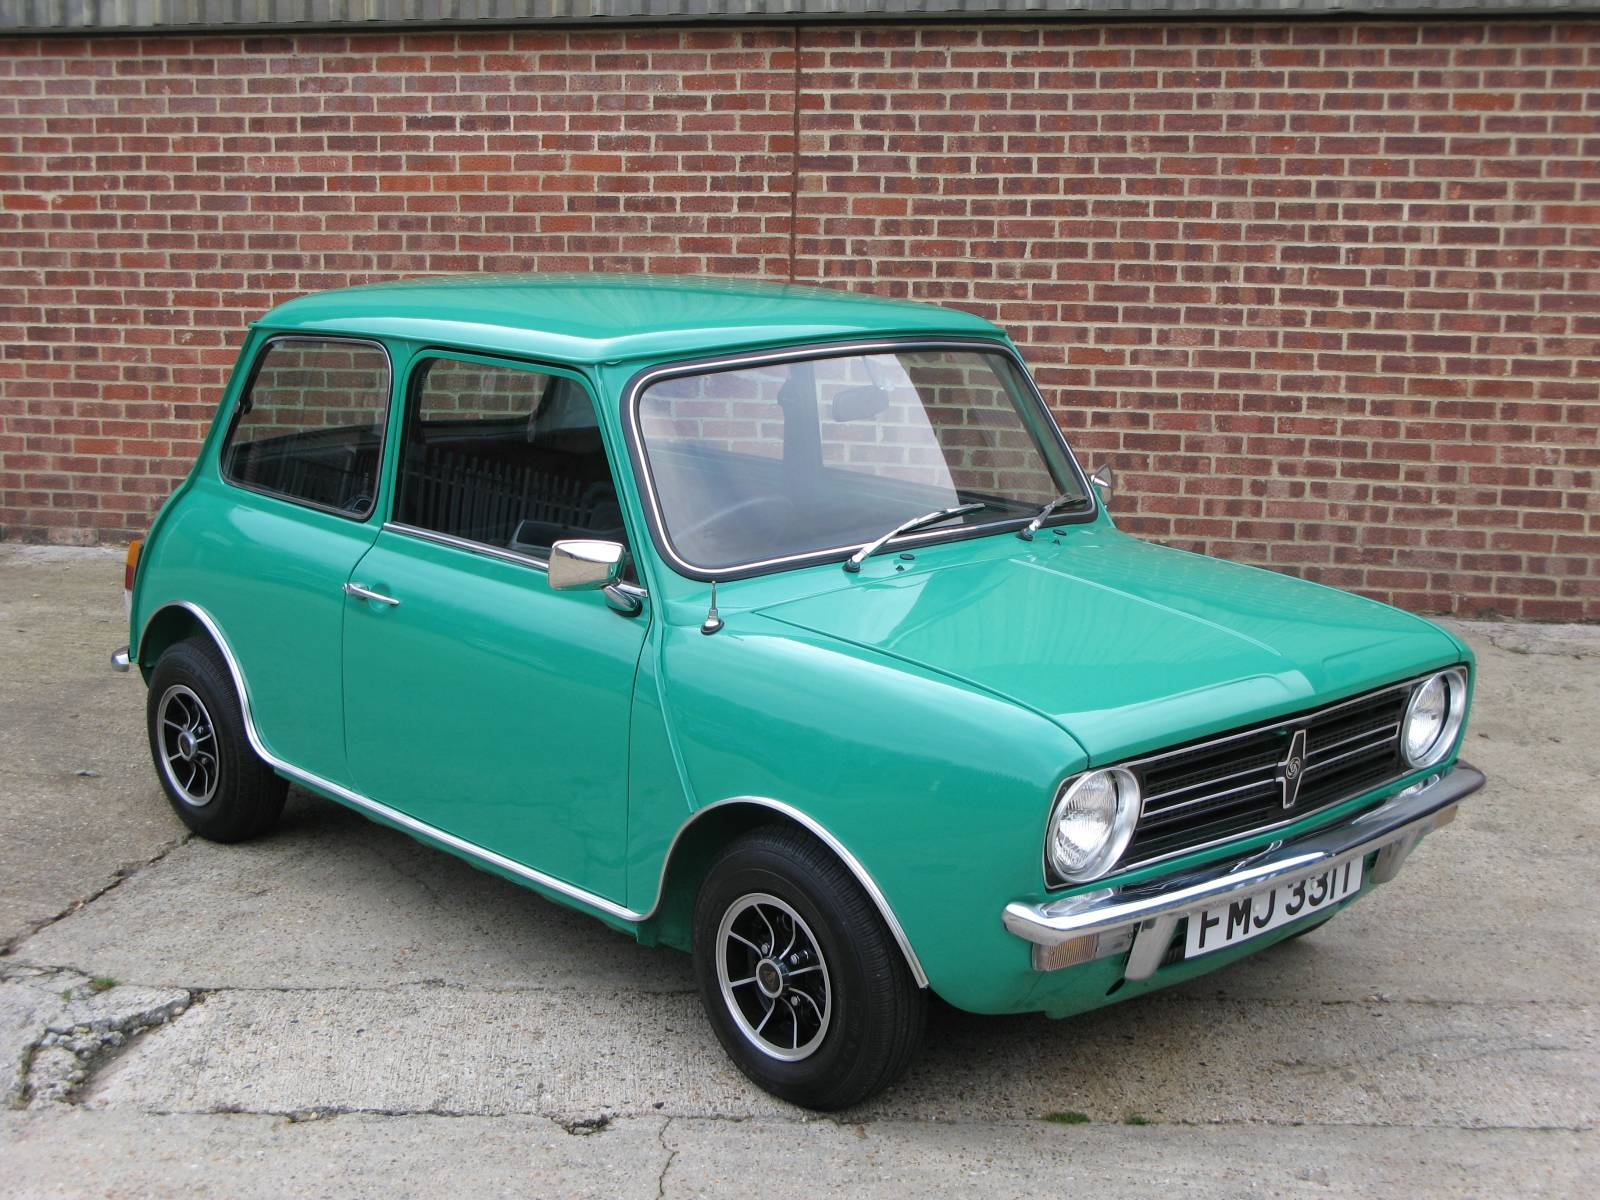 for sale austin mini clubman 1979 offered for gbp 7 495. Black Bedroom Furniture Sets. Home Design Ideas